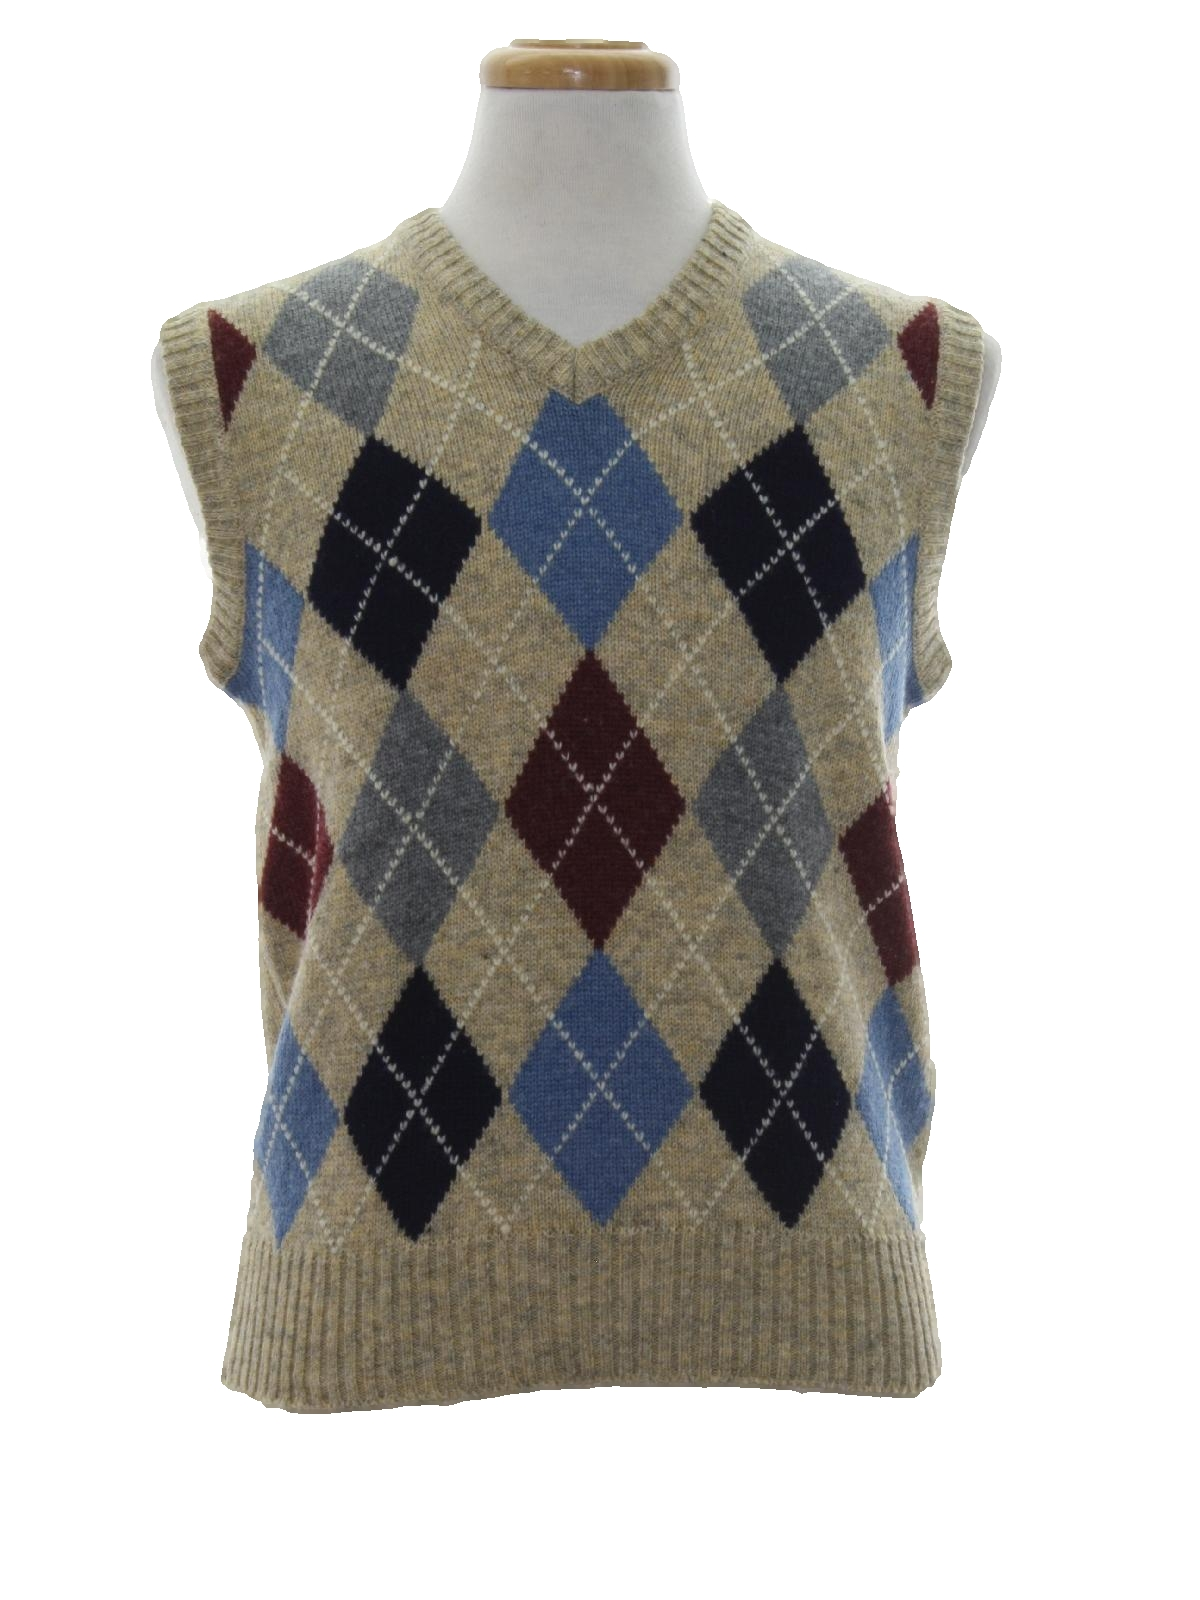 Retro 80's Sweater: 80s -Claybrooke- Mens heathered tan with sky ...